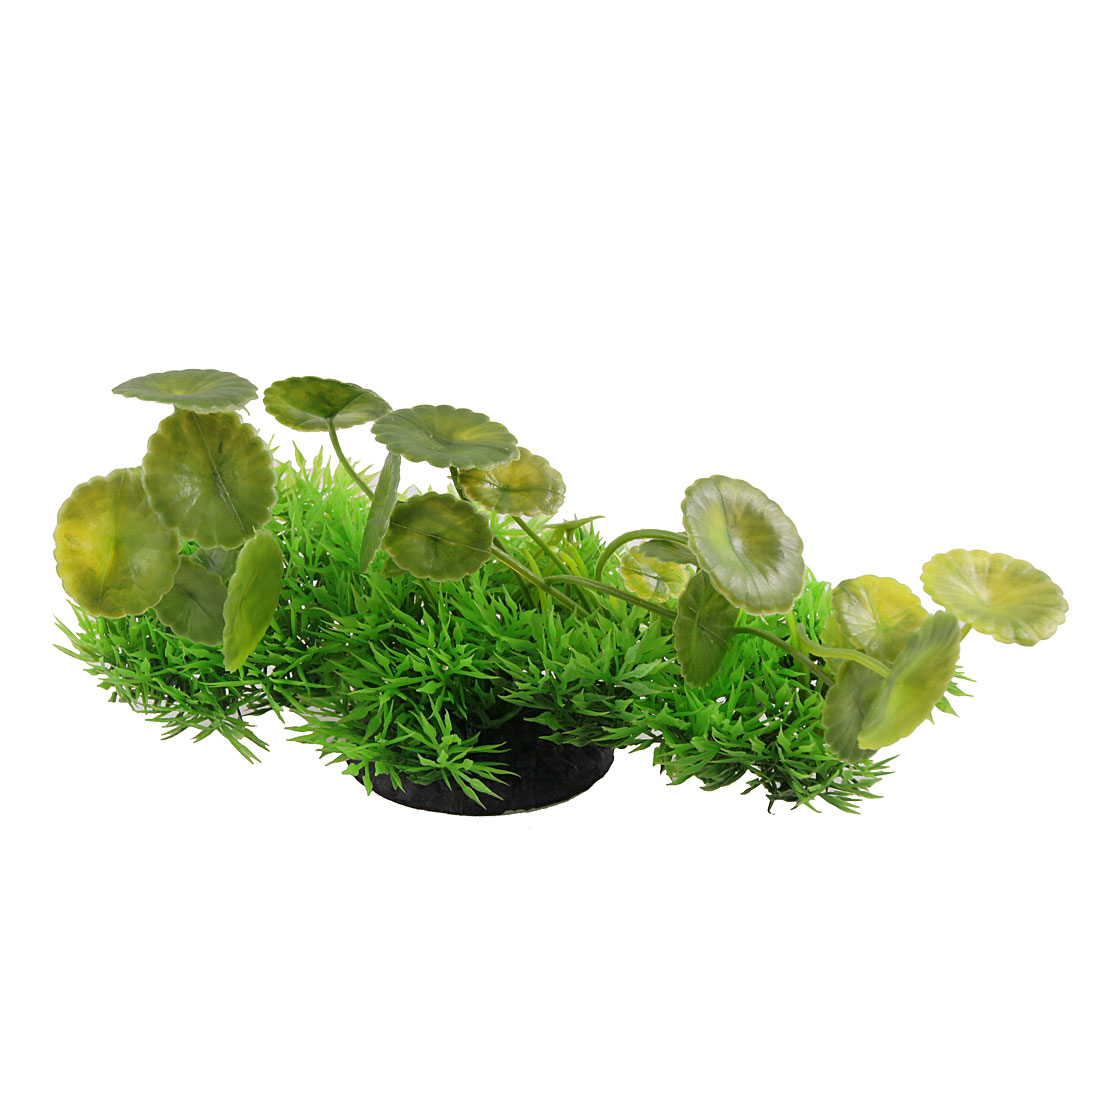 "Aquarium Emulational Green Round Leaf Aquatic Plants Ornament 7.7"" Width"